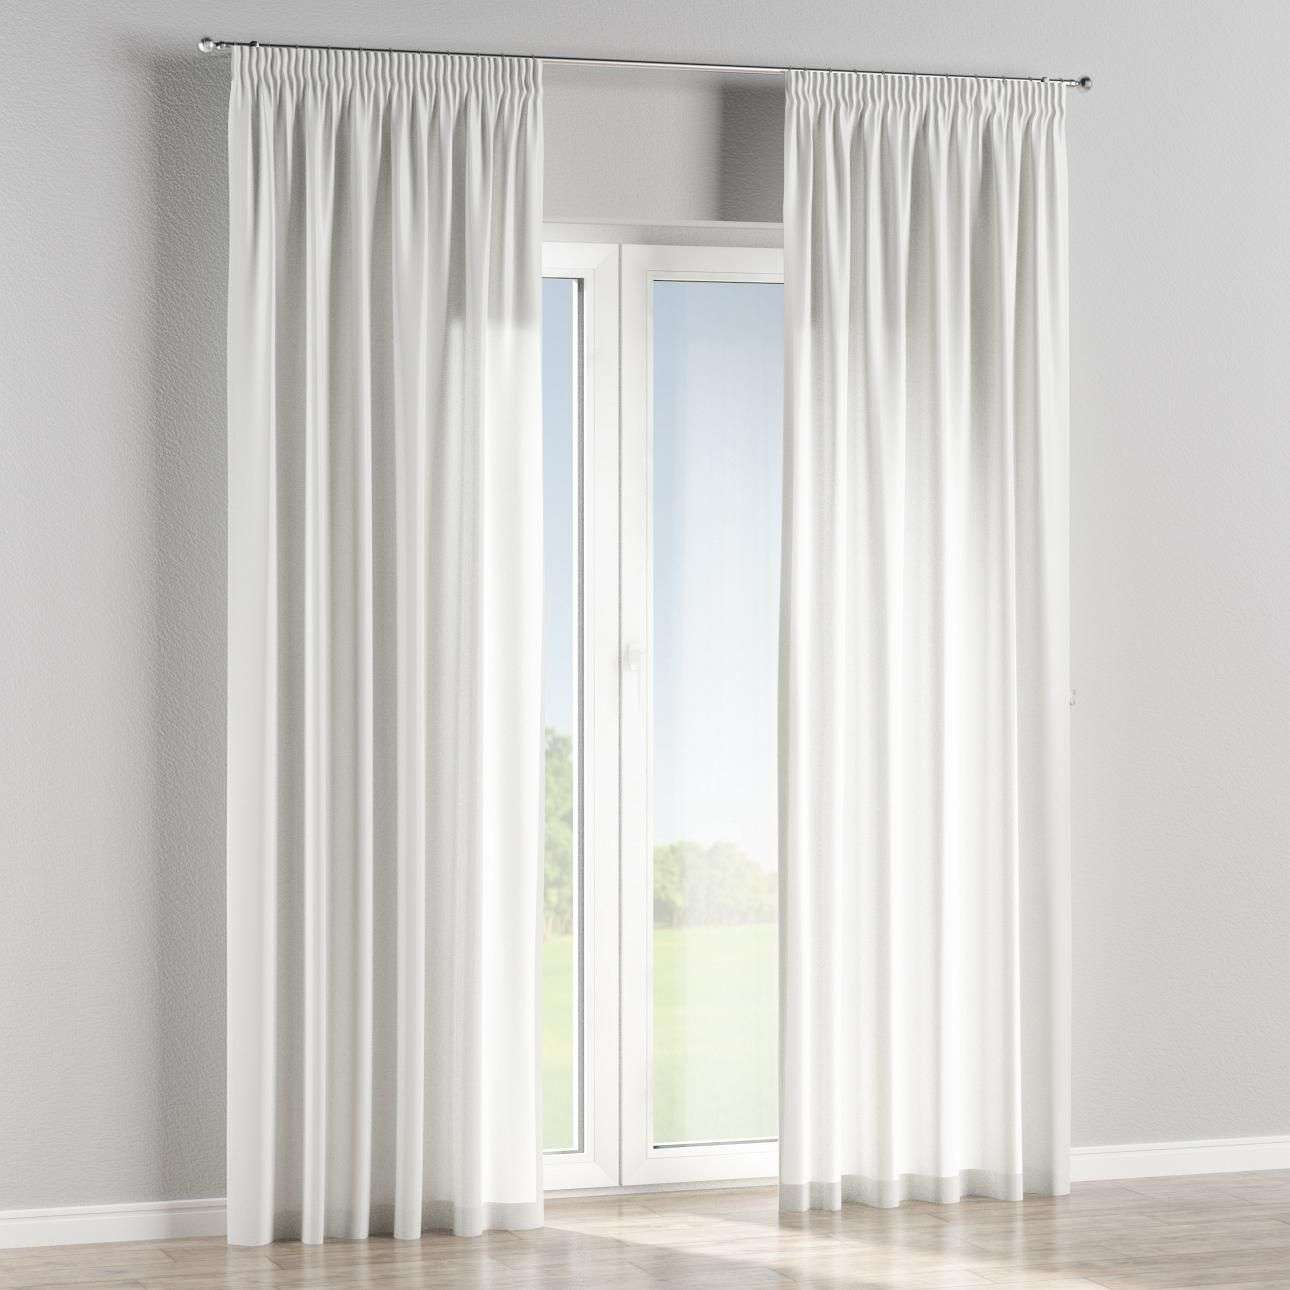 Pencil pleat lined curtains in collection Norge, fabric: 140-84